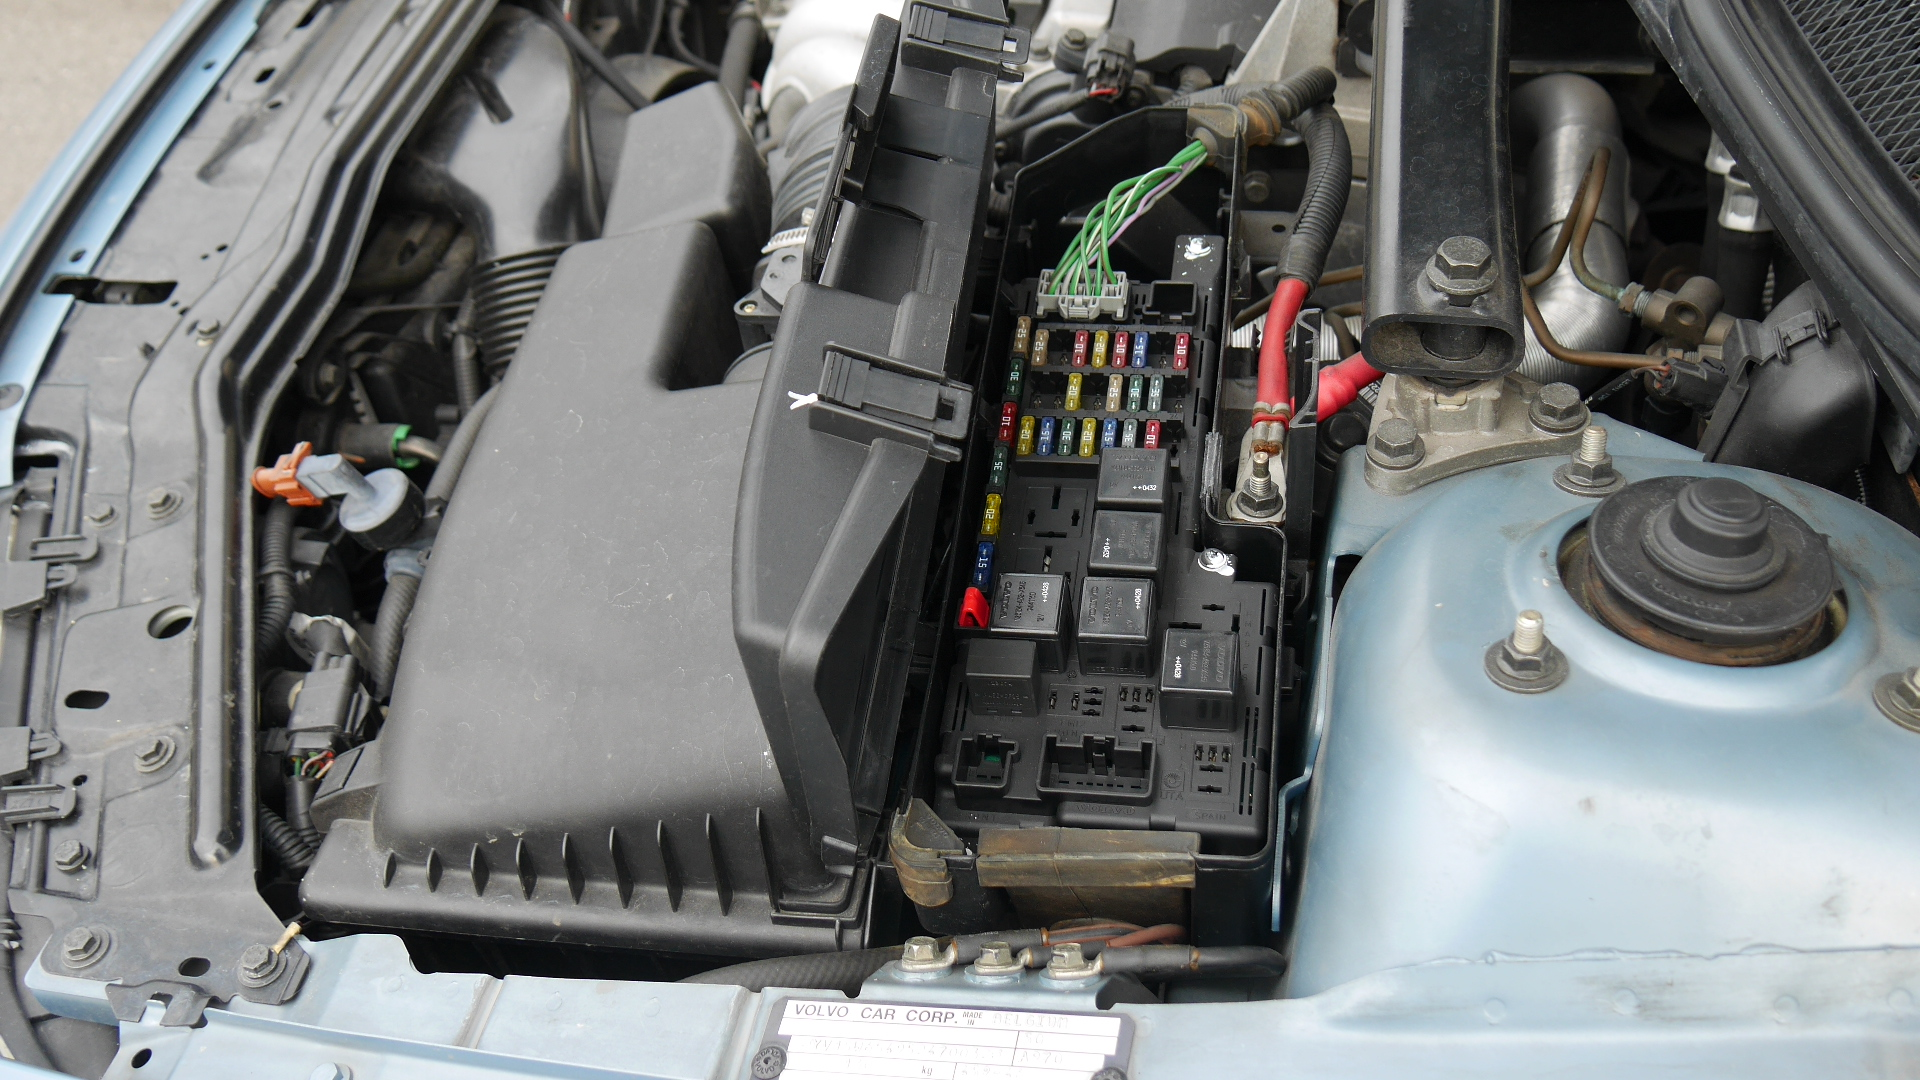 2006 Volvo Xc70 Fuse Box Wiring Library 2013 Toyota Highlander Location 2005 To 2007 V70 Locations P4940893